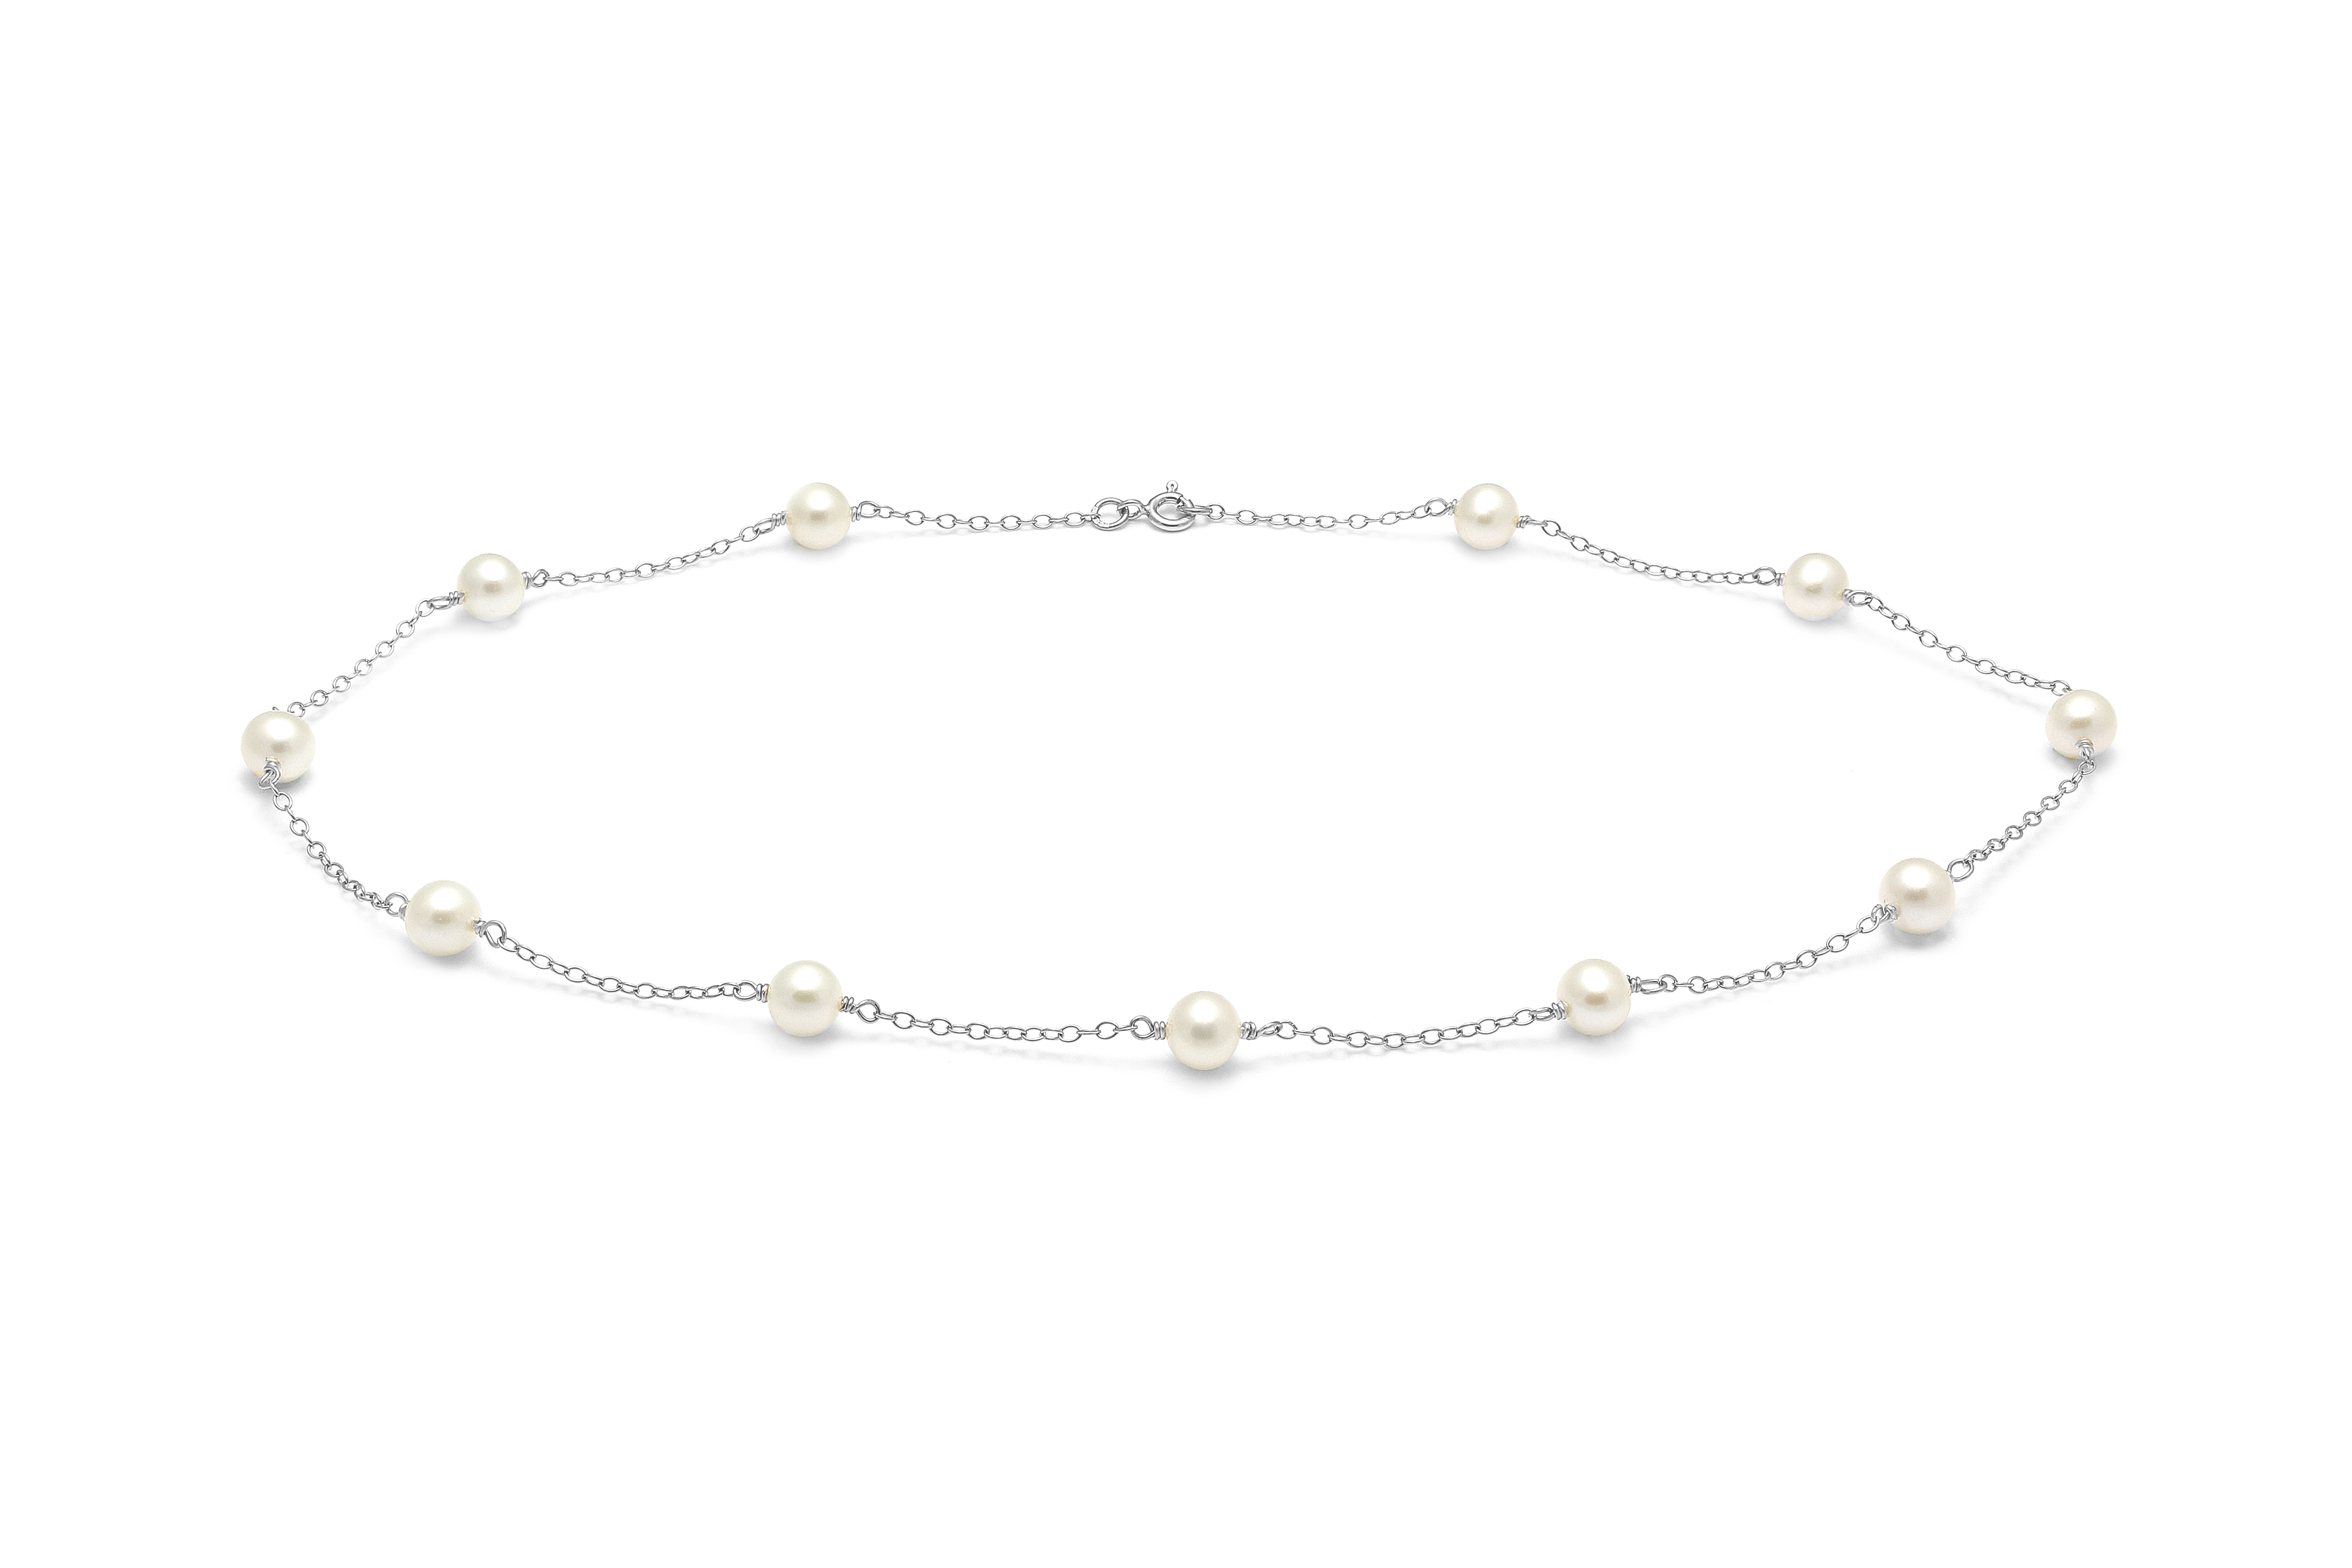 A Trace link necklace with Cultured River Pearls along the chain